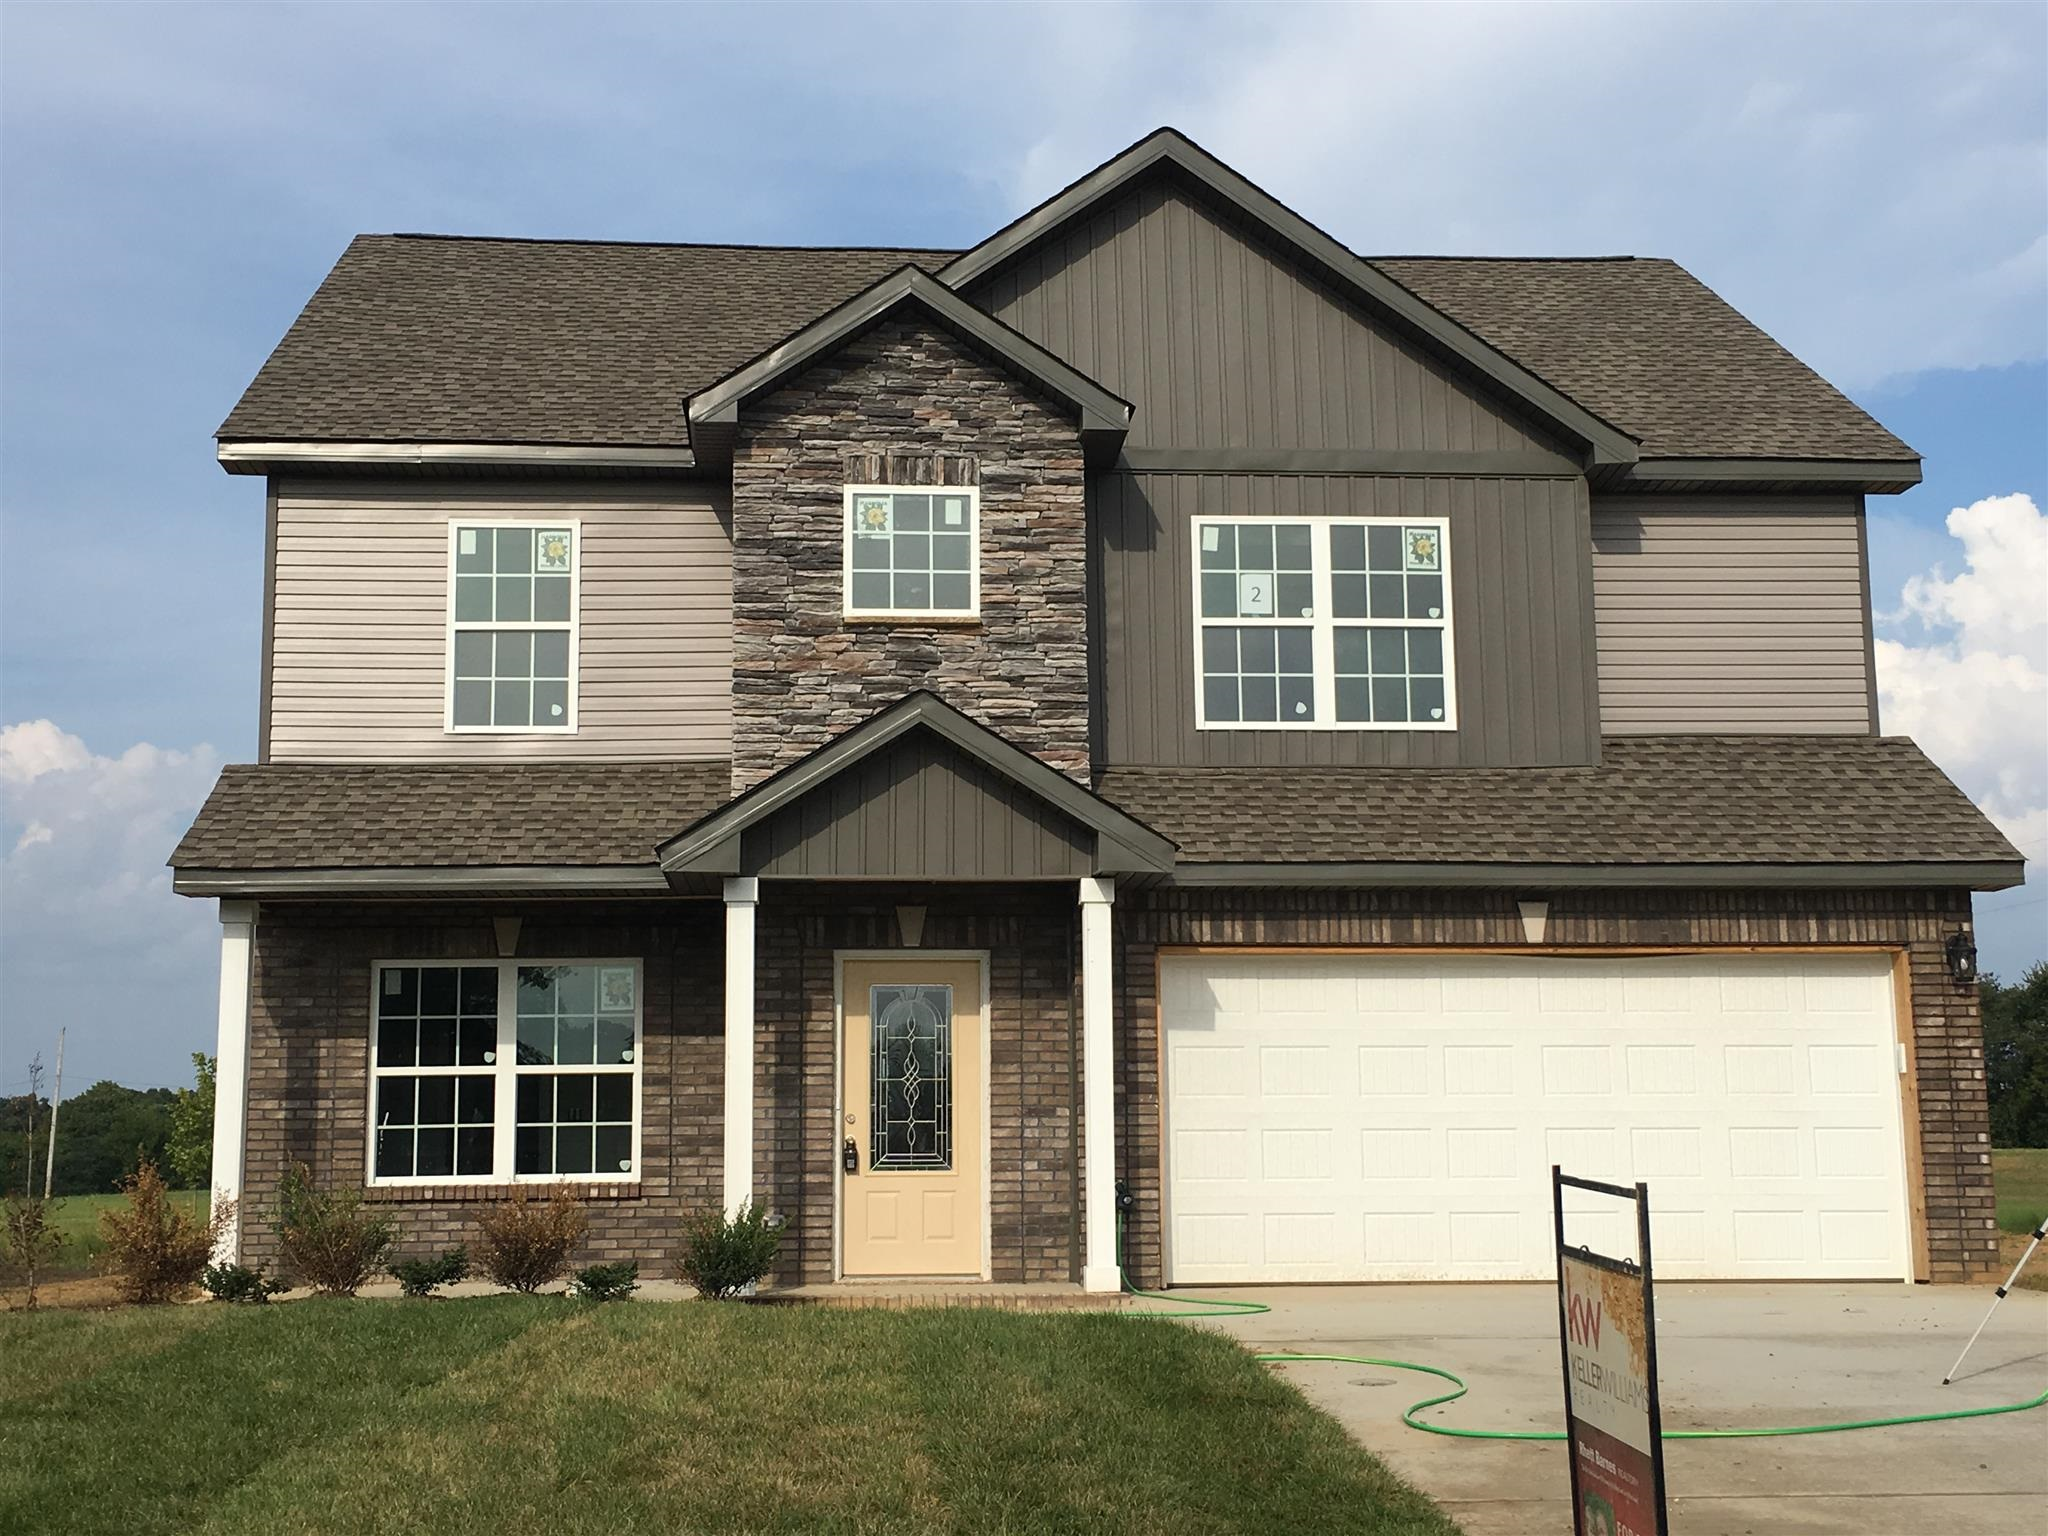 Homes for Sale in Sycamore Hills Subdivision Clarksville TN